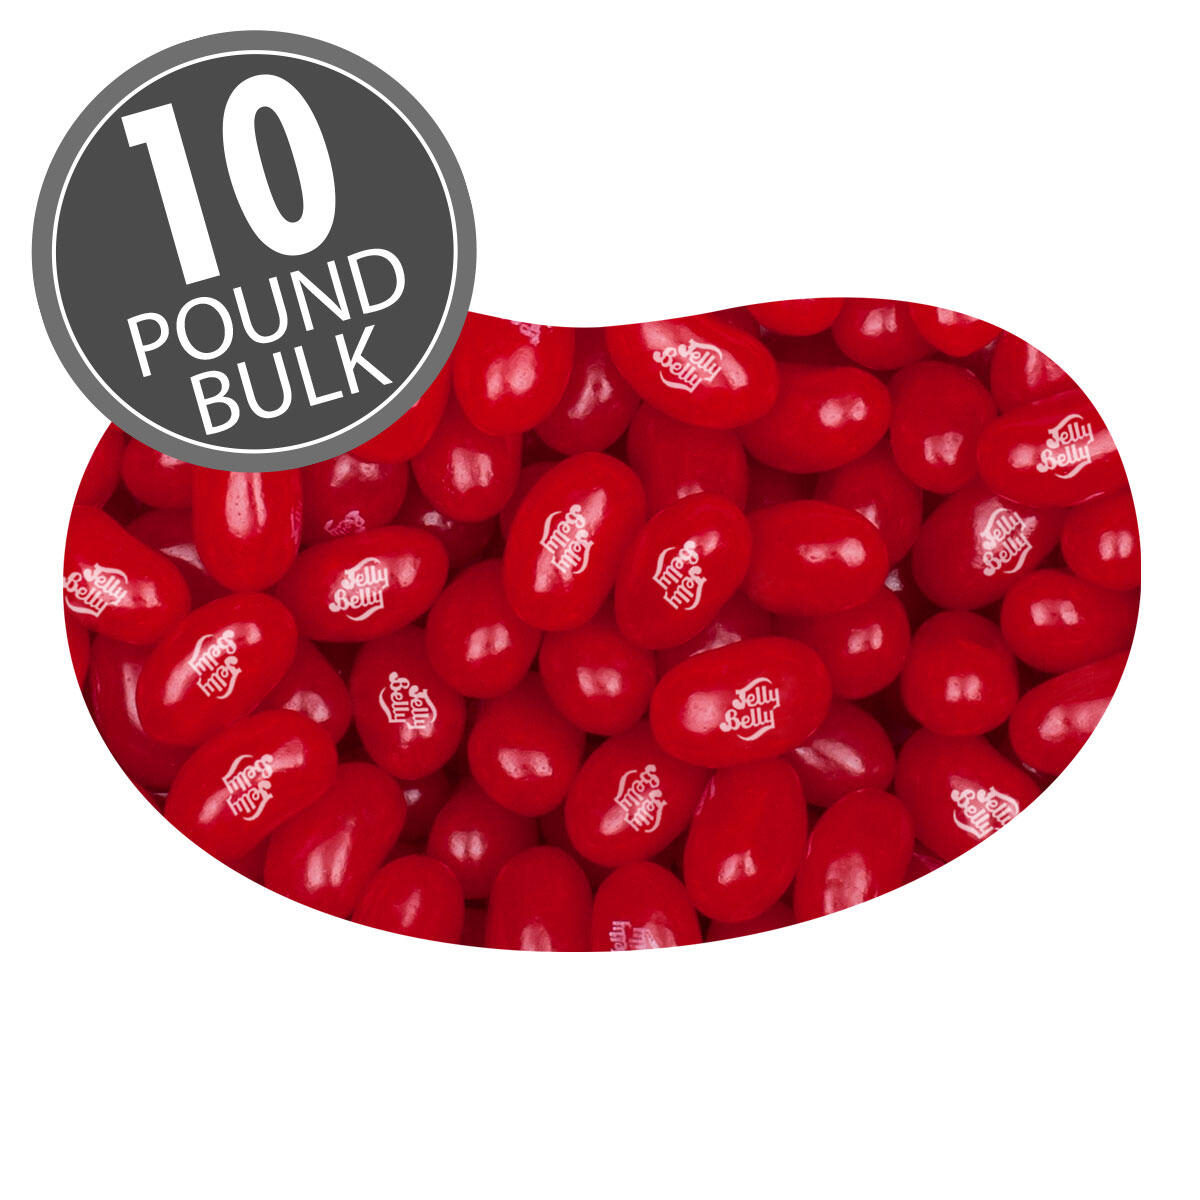 Very Cherry Jelly Beans - 10 lbs bulk